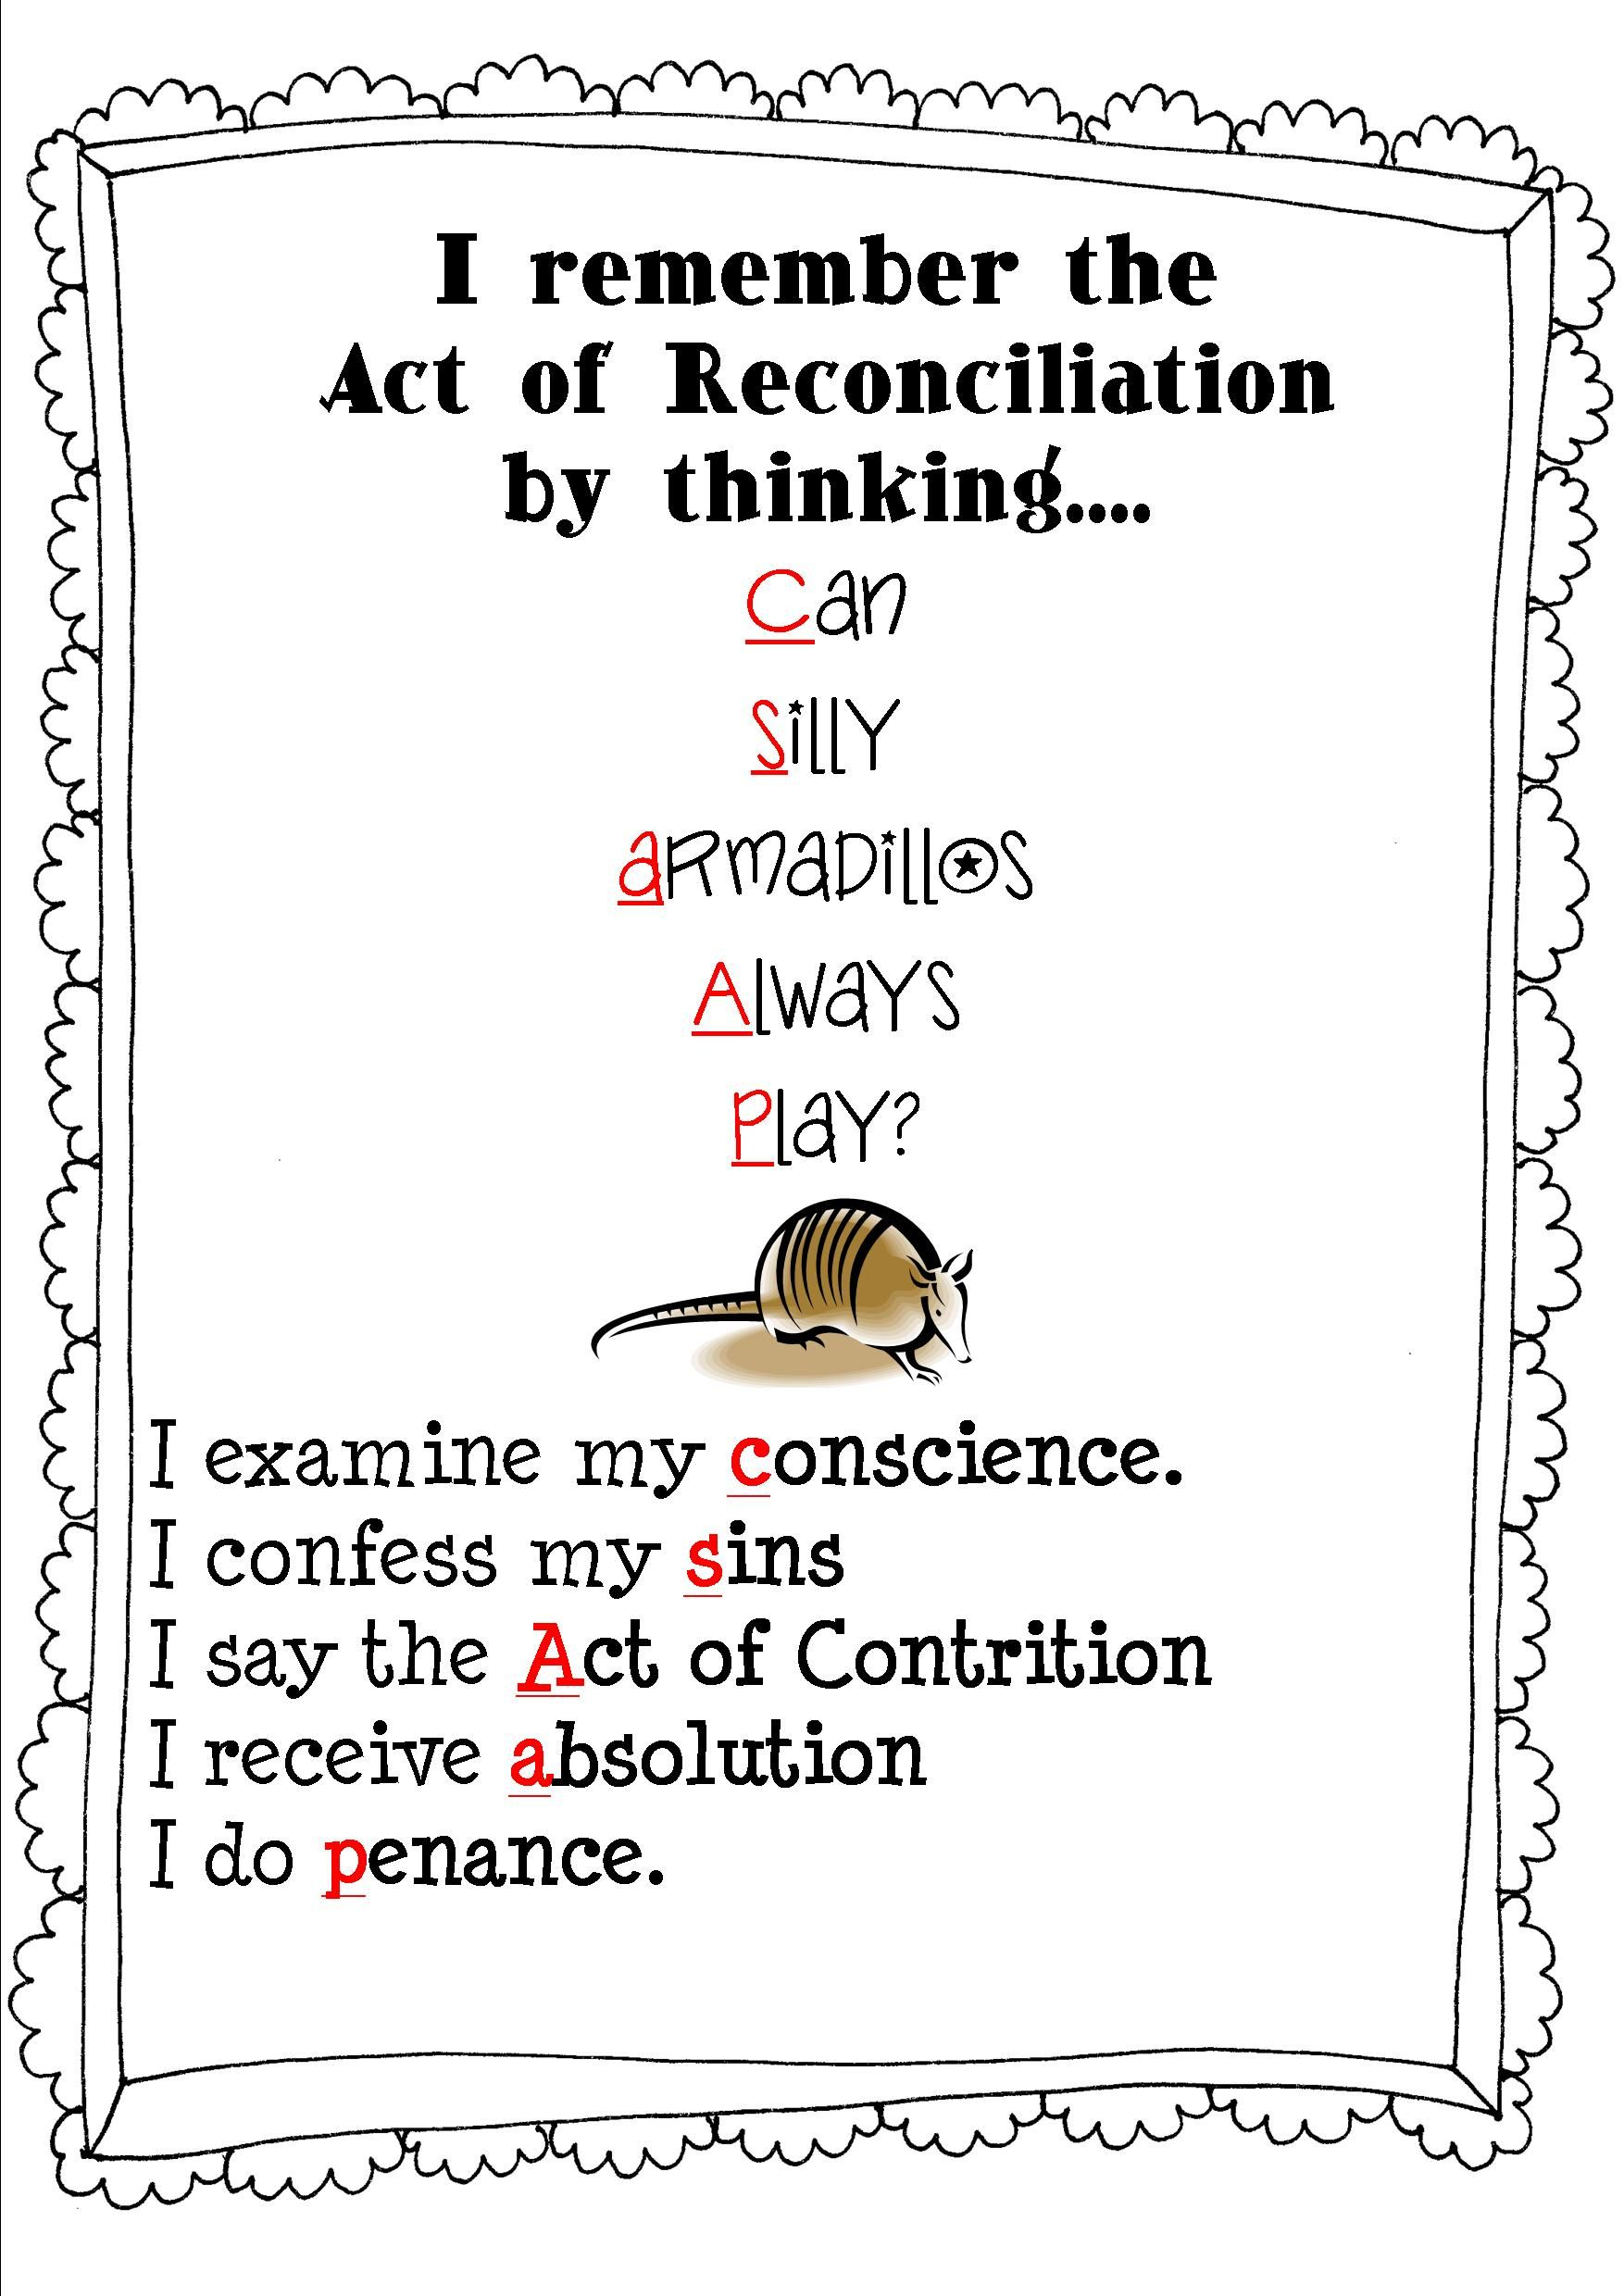 Reconciliation Rhyme For More Fun Activities Click The